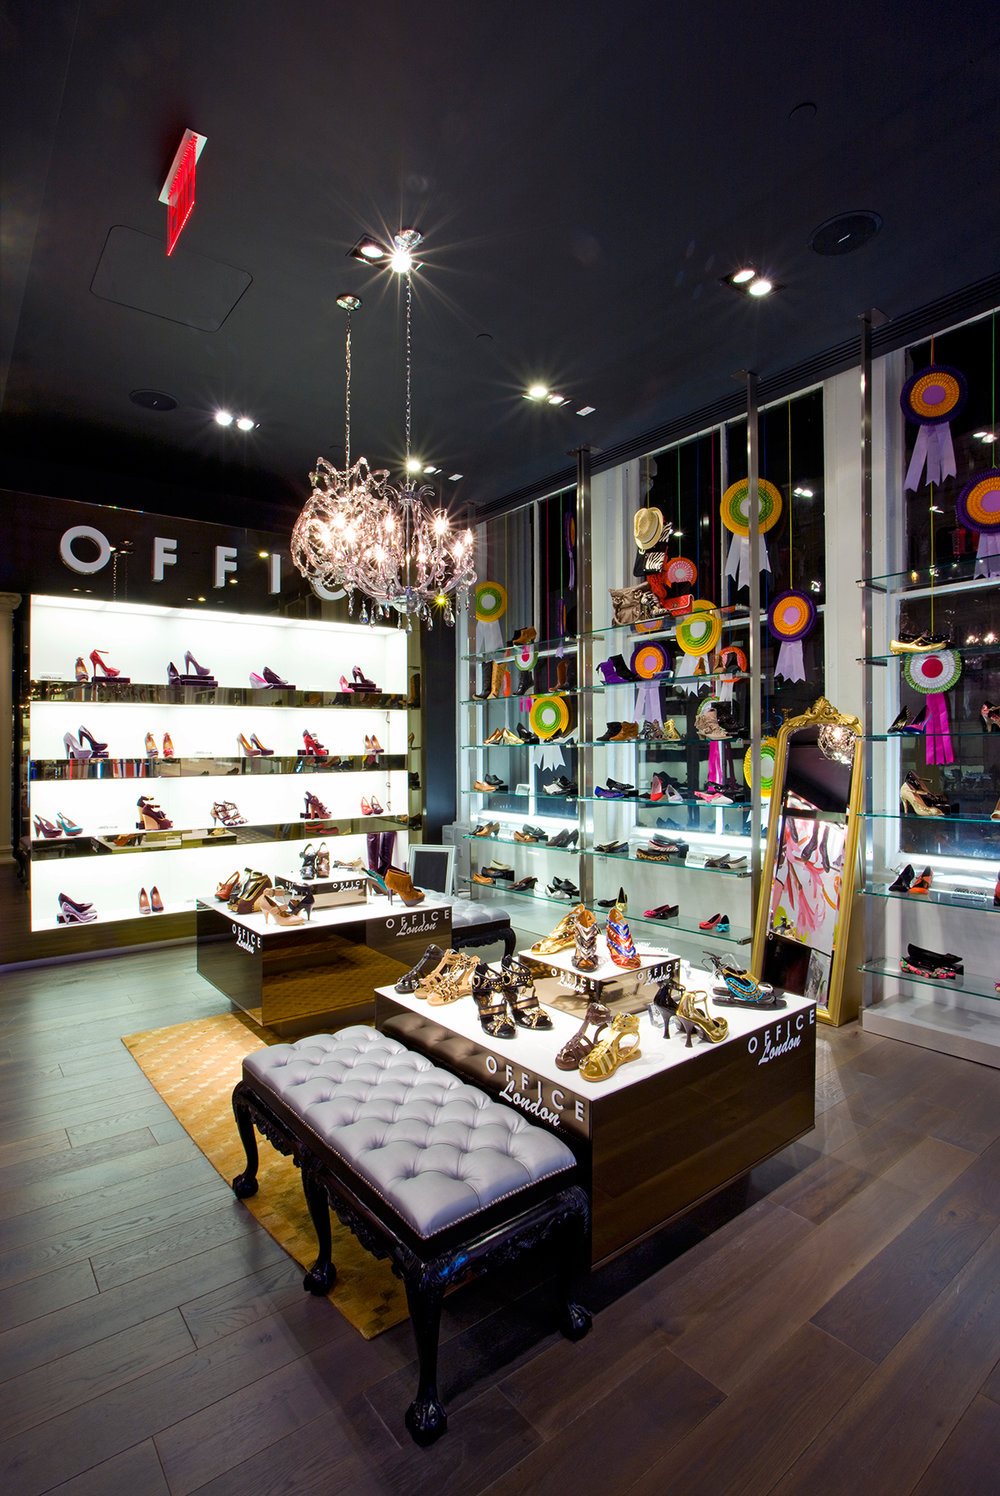 Womens sandals and heels on a brightly lit display table and shelf with chandeliers overhead. MEP designed by 2L Engineering.